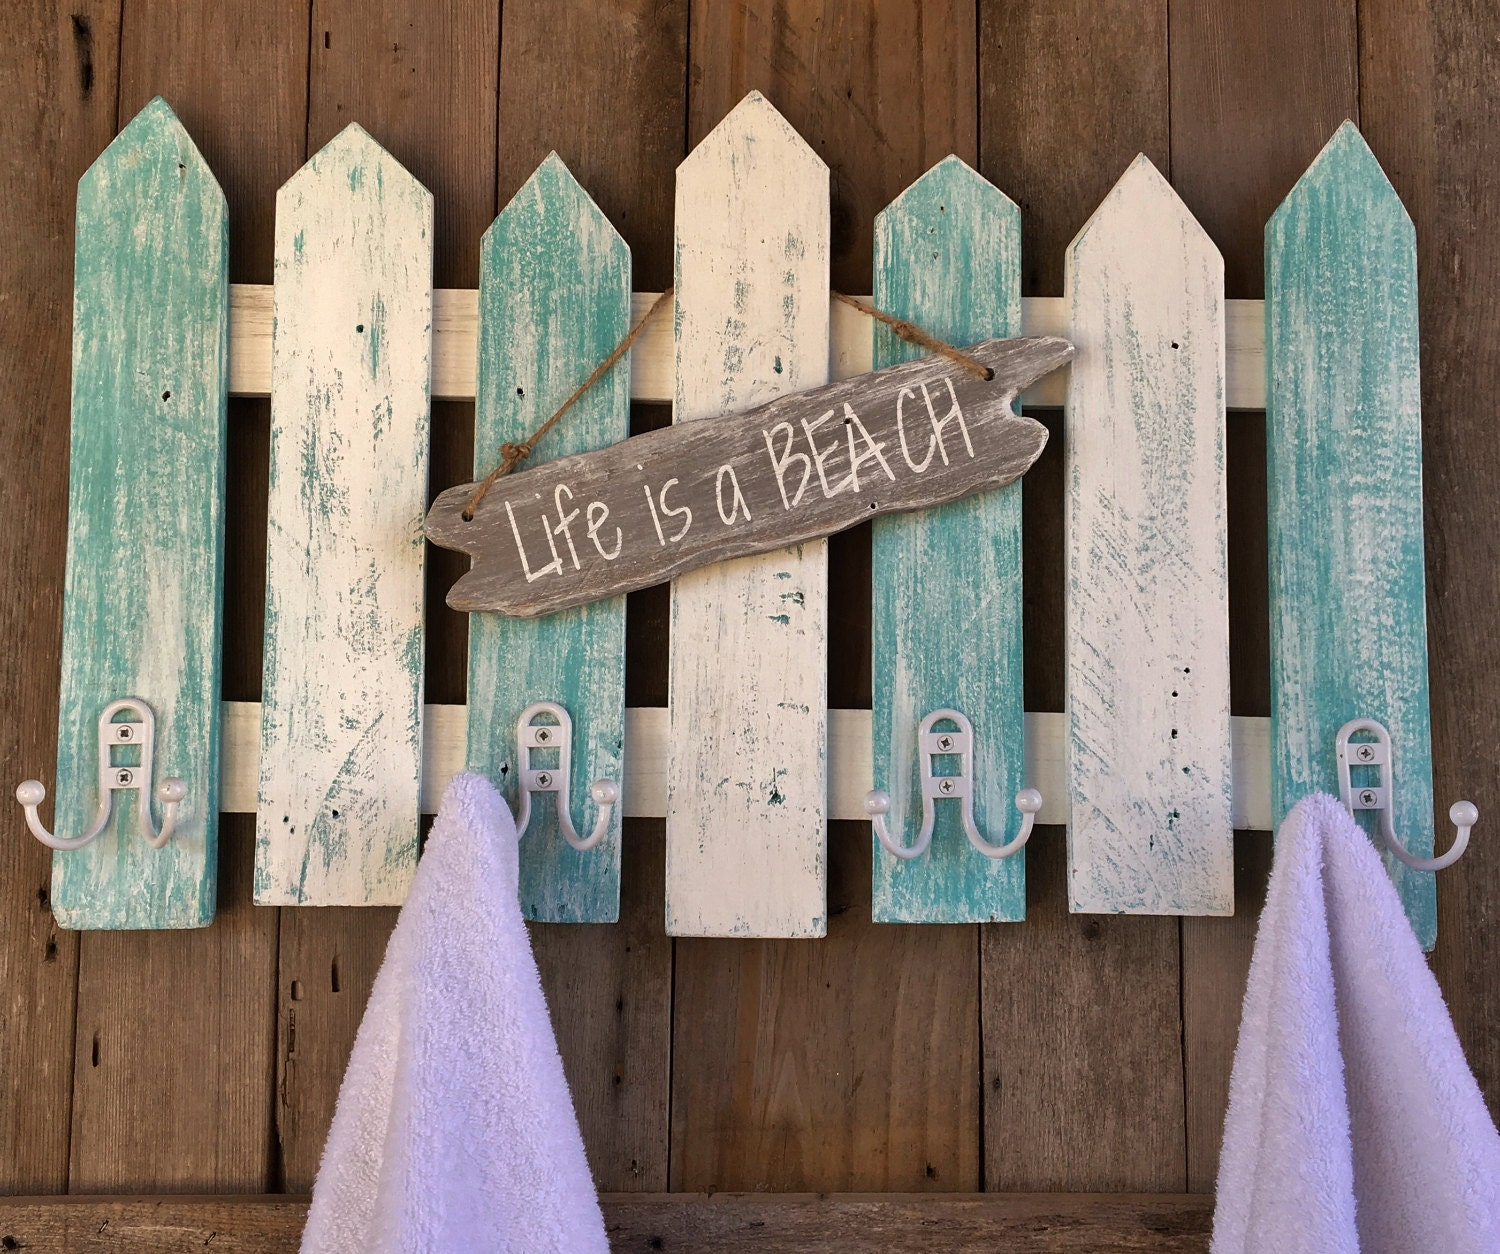 Pool Towel Sign With Hooks: Beachy Picket Fence Towel Or Coat Rack With Life Is A